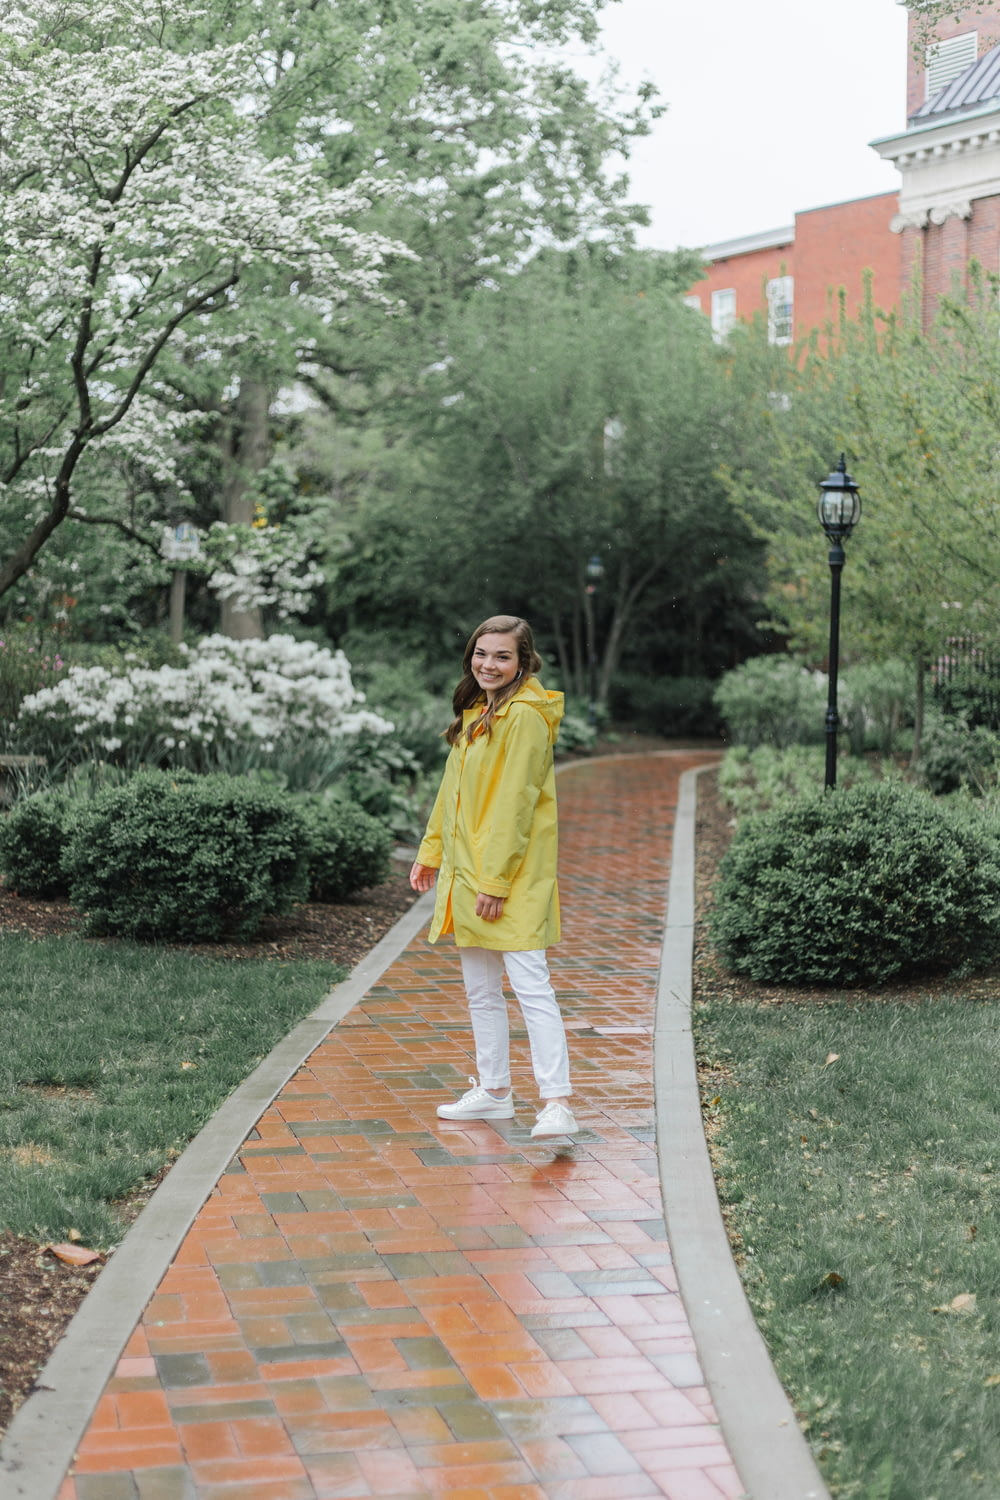 woman in yellow robe standing on brown concrete pathway